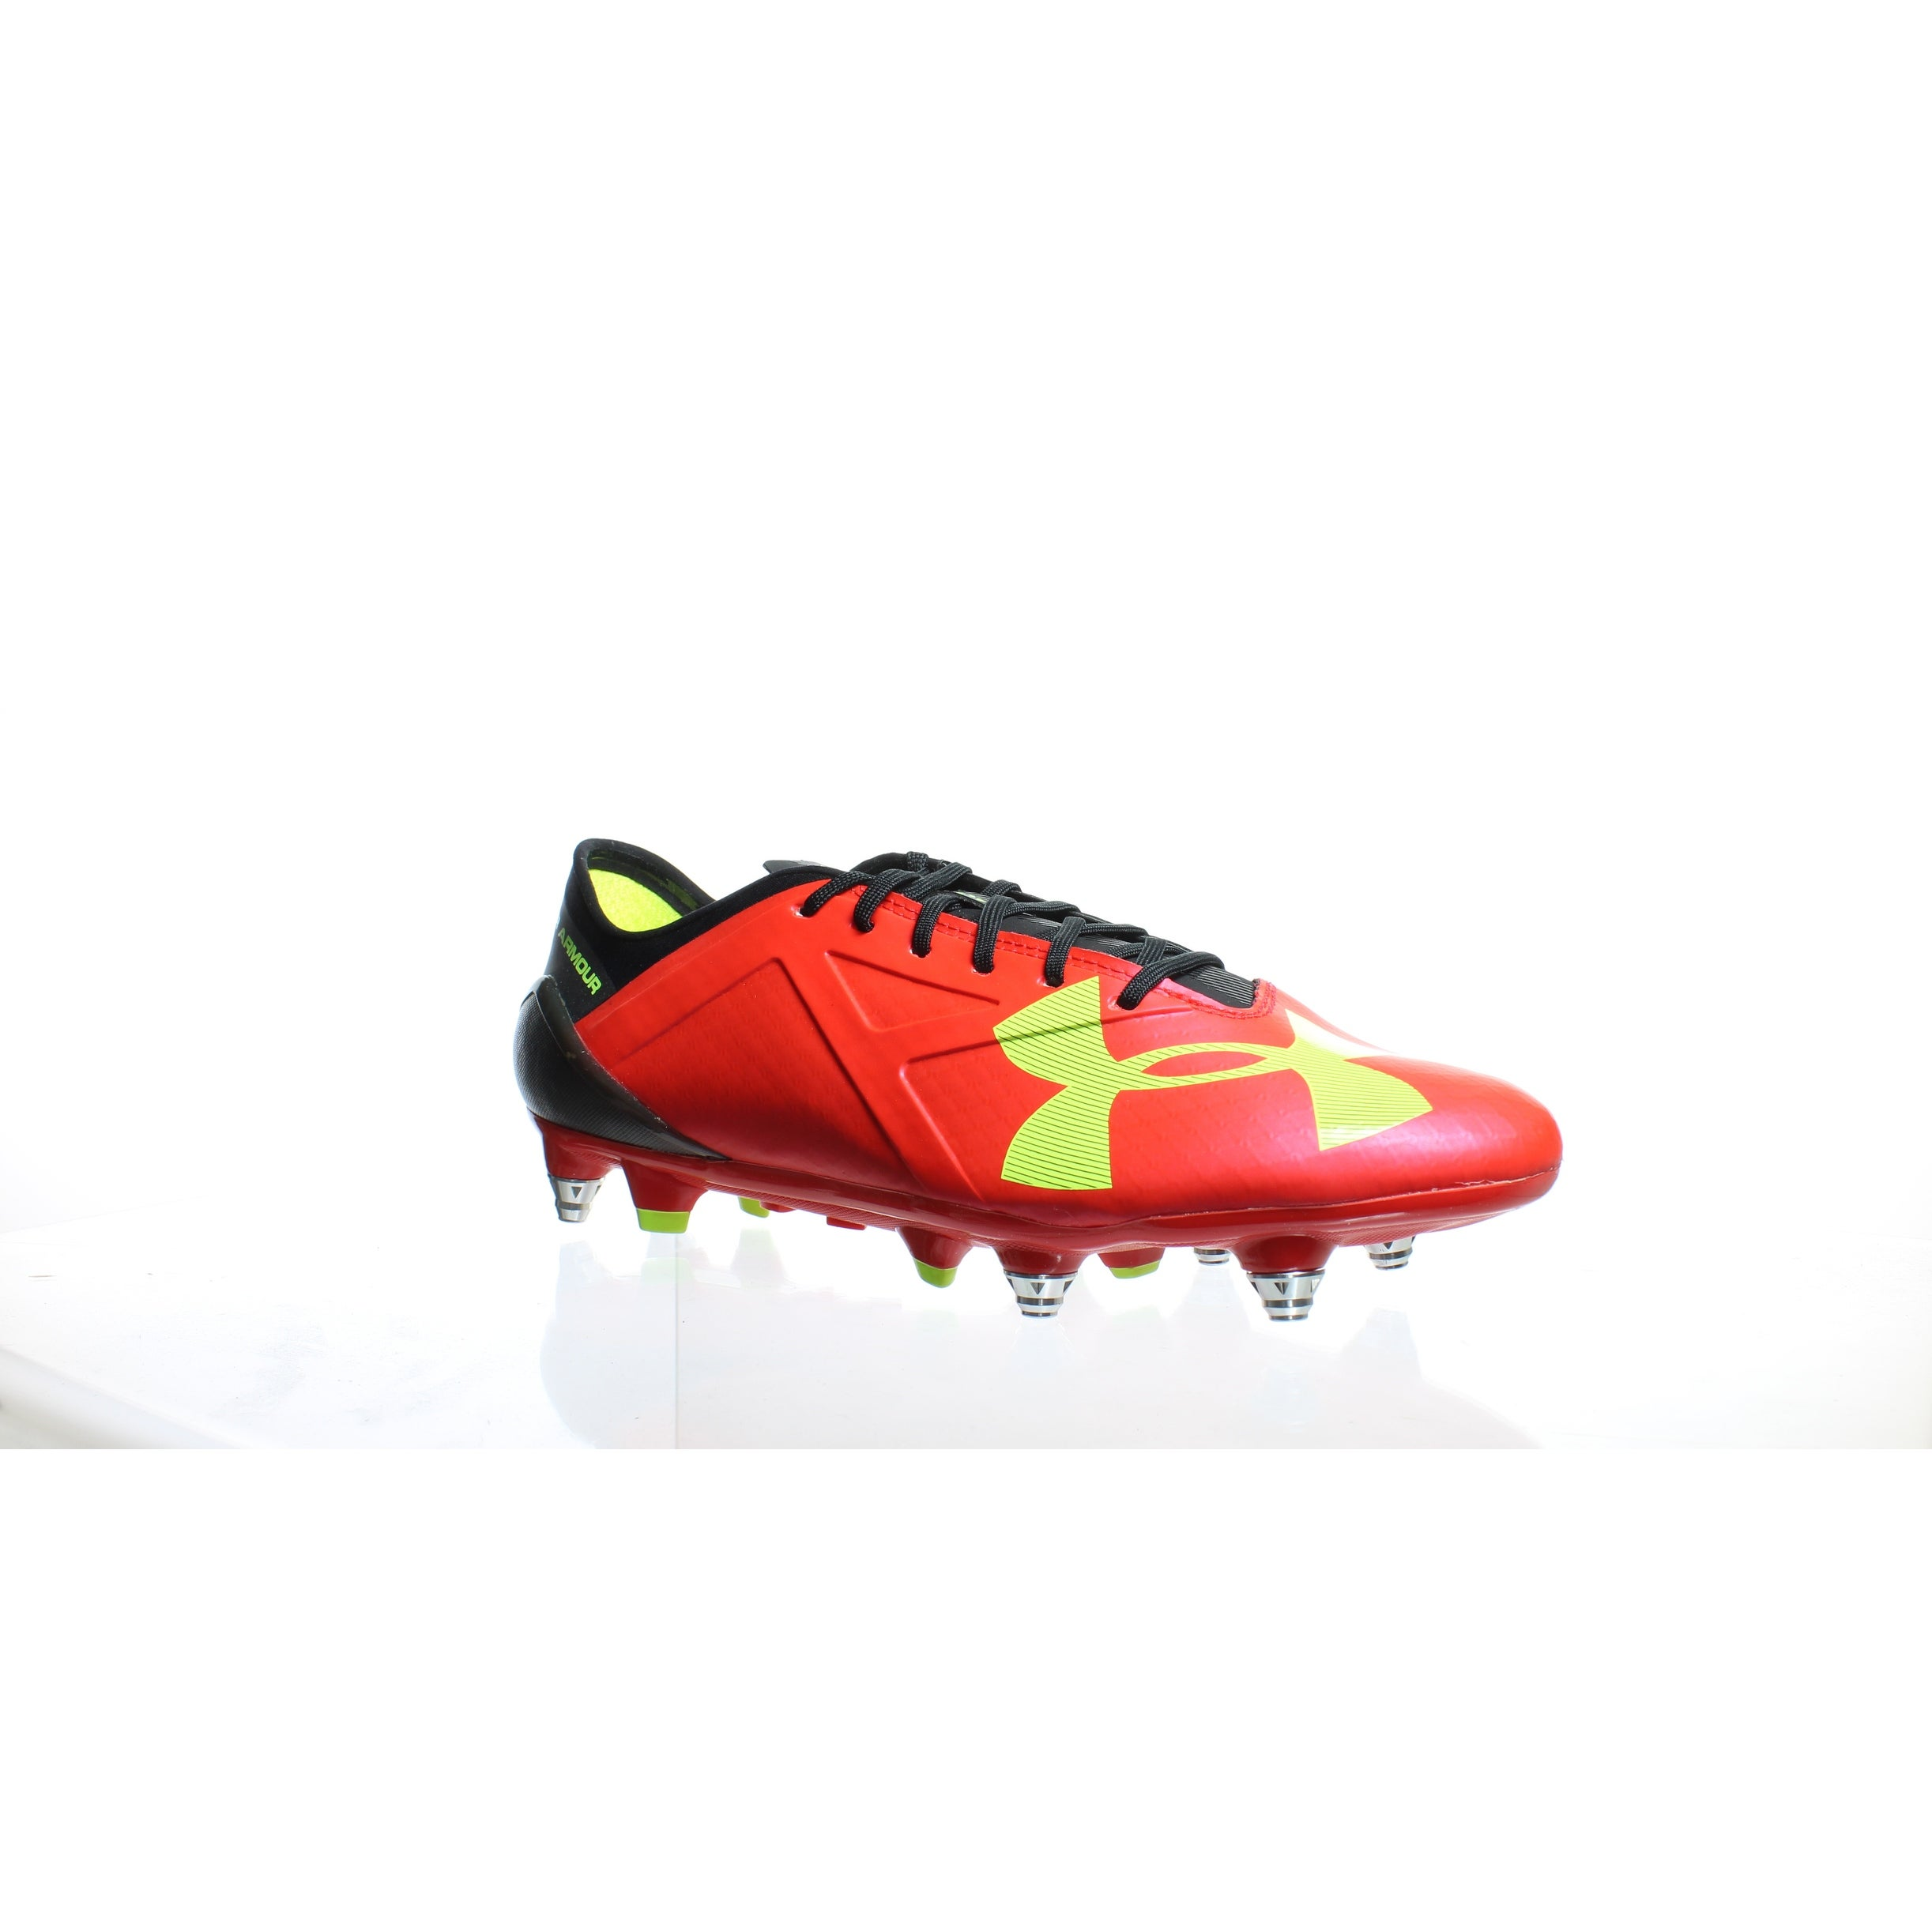 791419bf0 Shop Under Armour Mens Spotlight Hybrid Red Soccer Cleats Size 9 ...